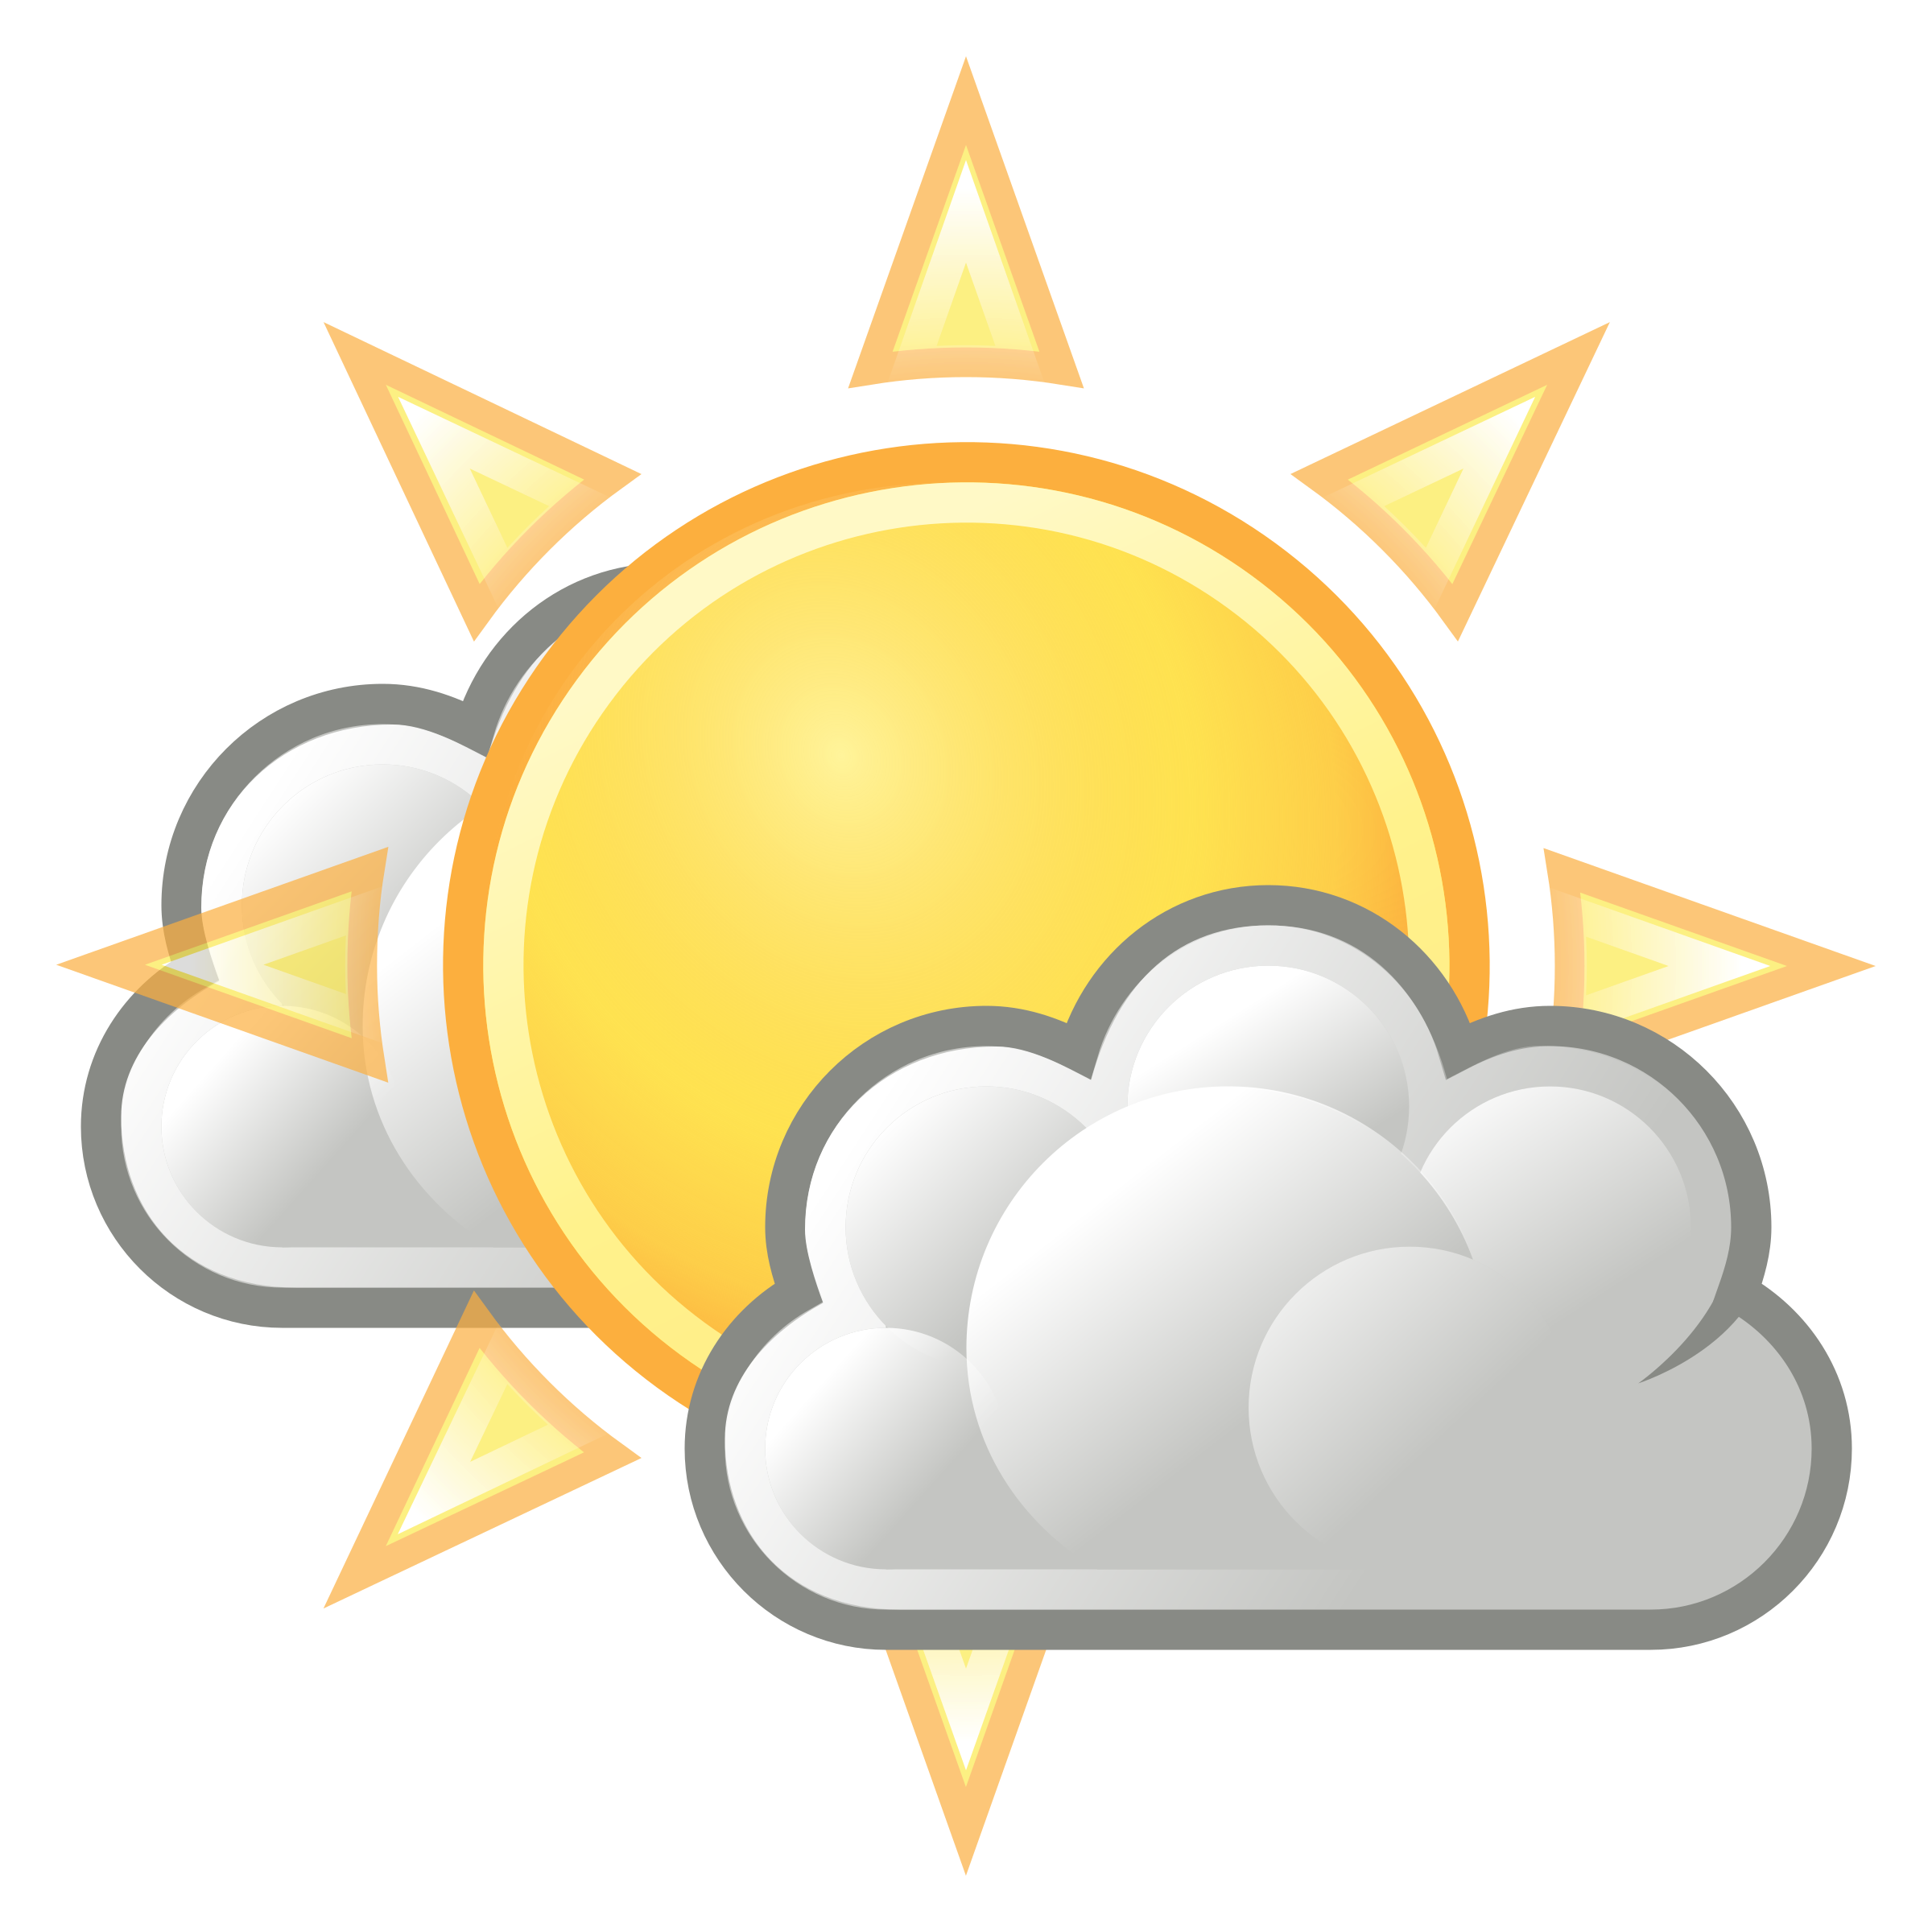 Tango weather few clouds. Sunny clipart background